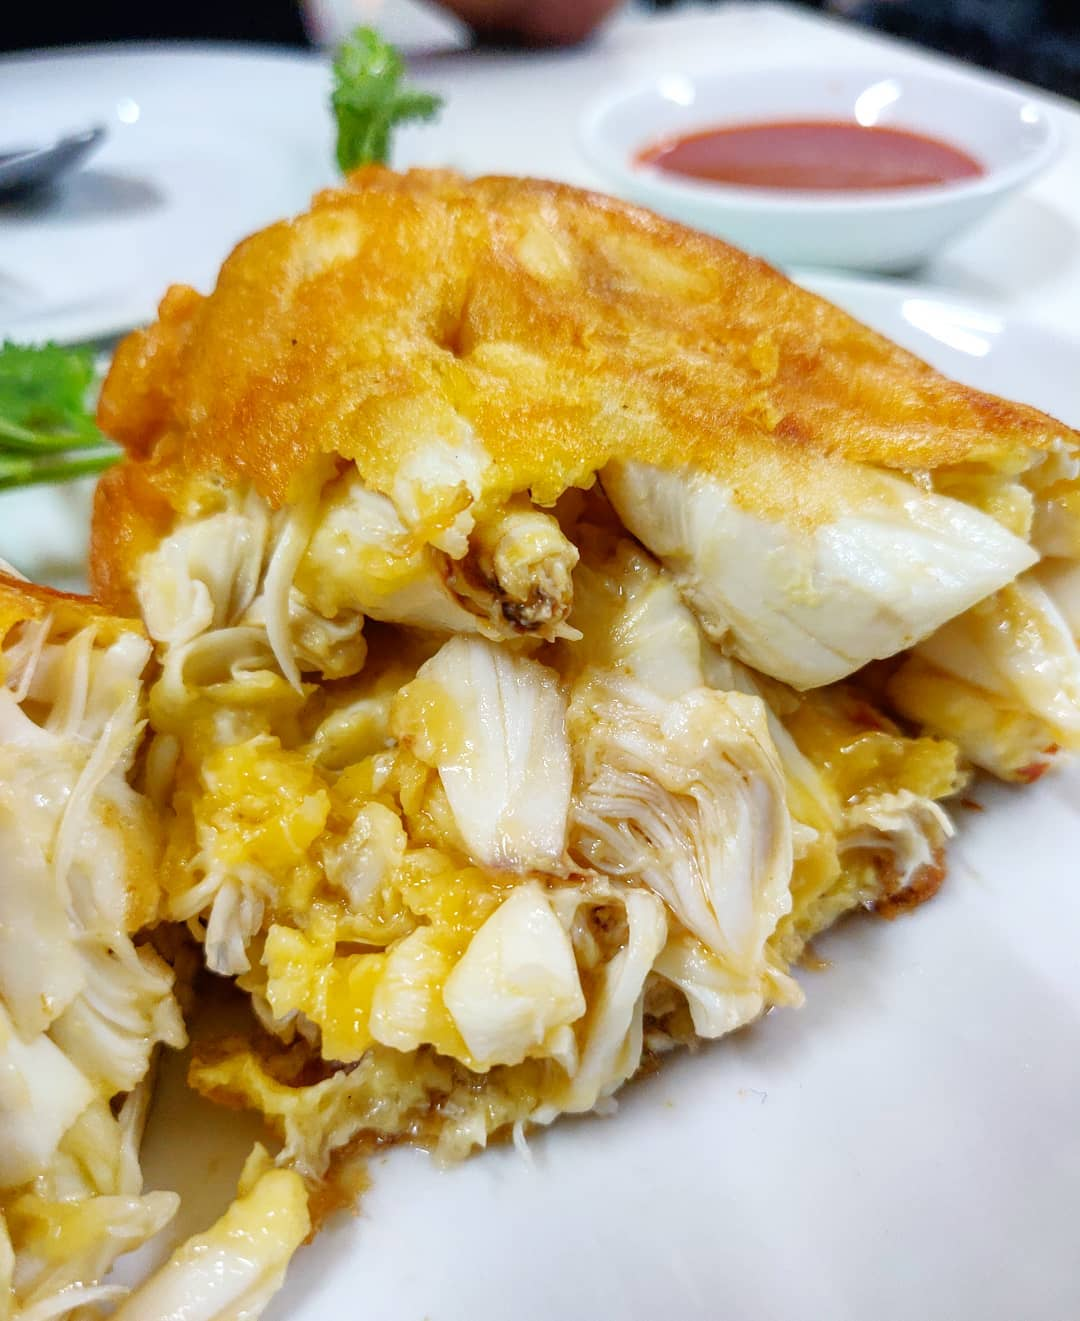 Jay Fai's Street Food Crab Omelette in Bangkok, Thailand. Recommended by Michelin guides.